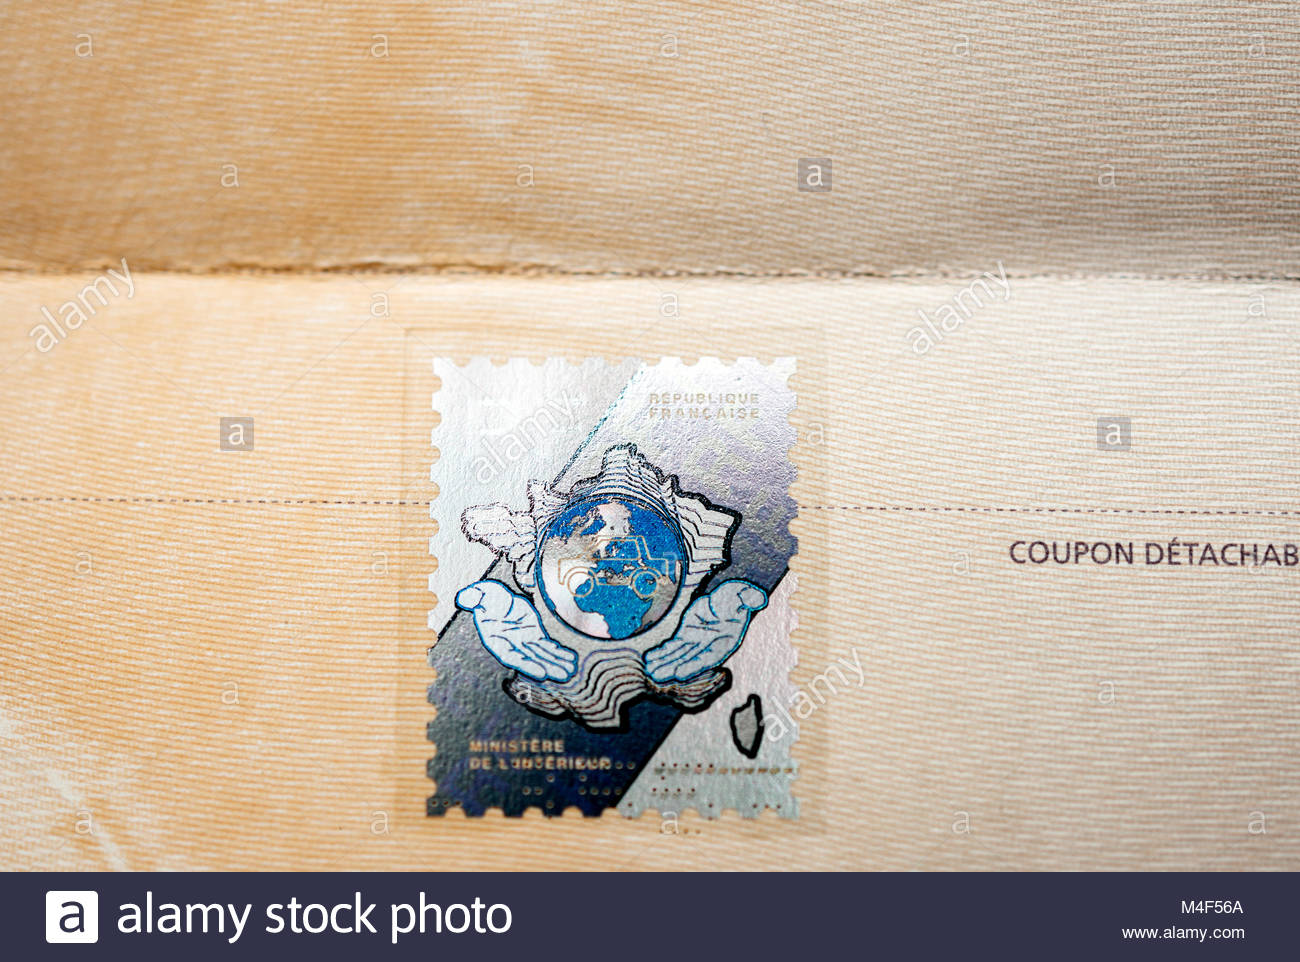 Official Stamp Stock Photos & Official Stamp Stock Images